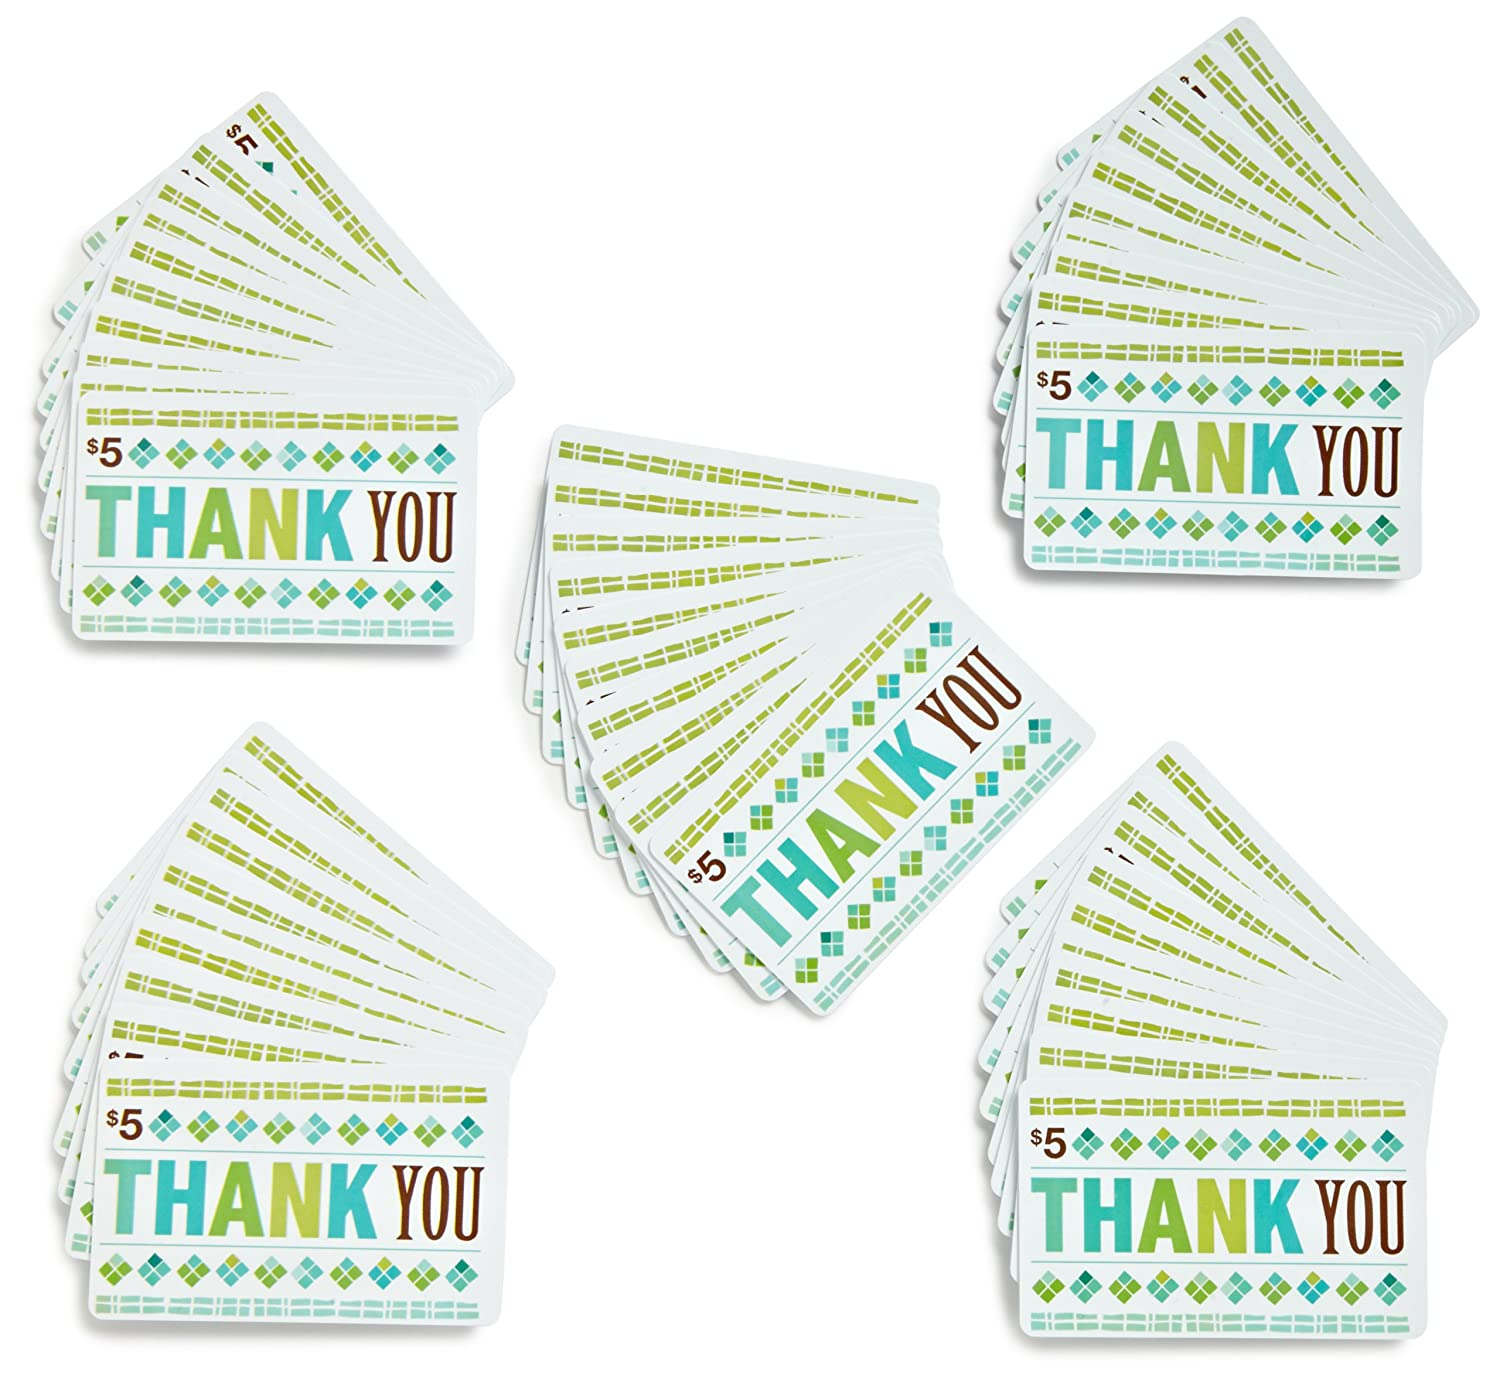 $5 t cards pack of 50 thank you card